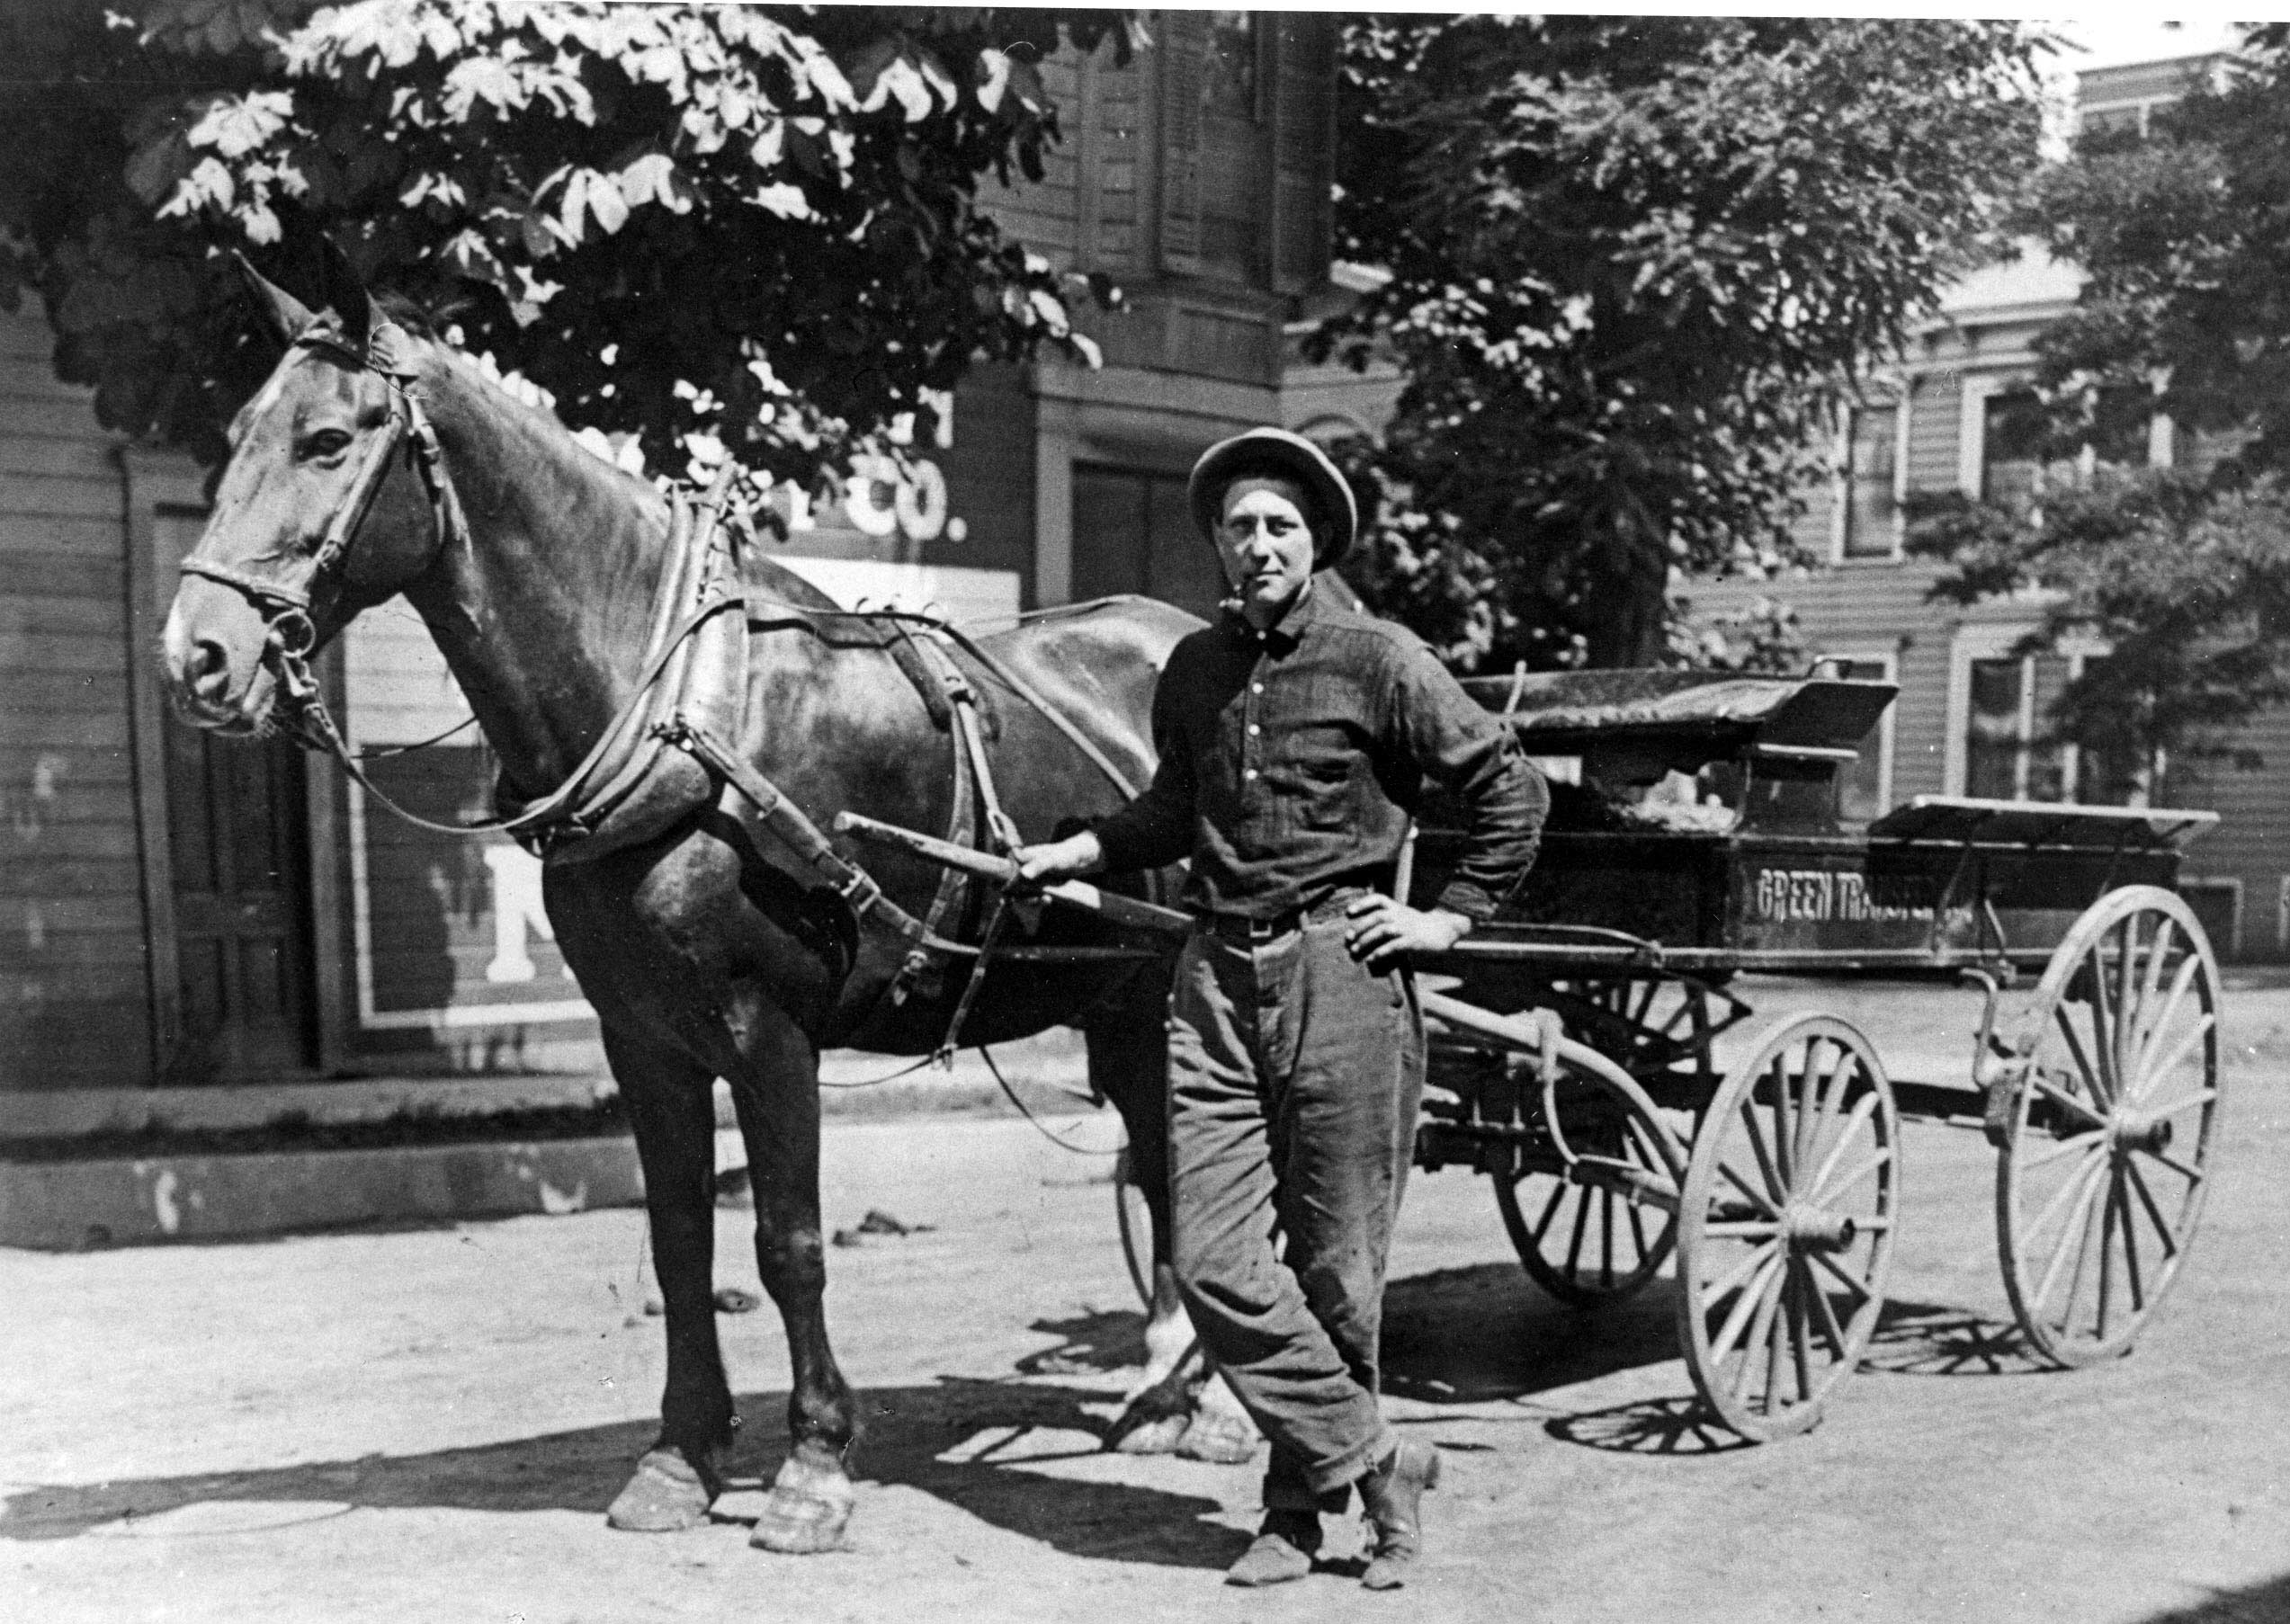 Teamster Early Days - Teamster with horse